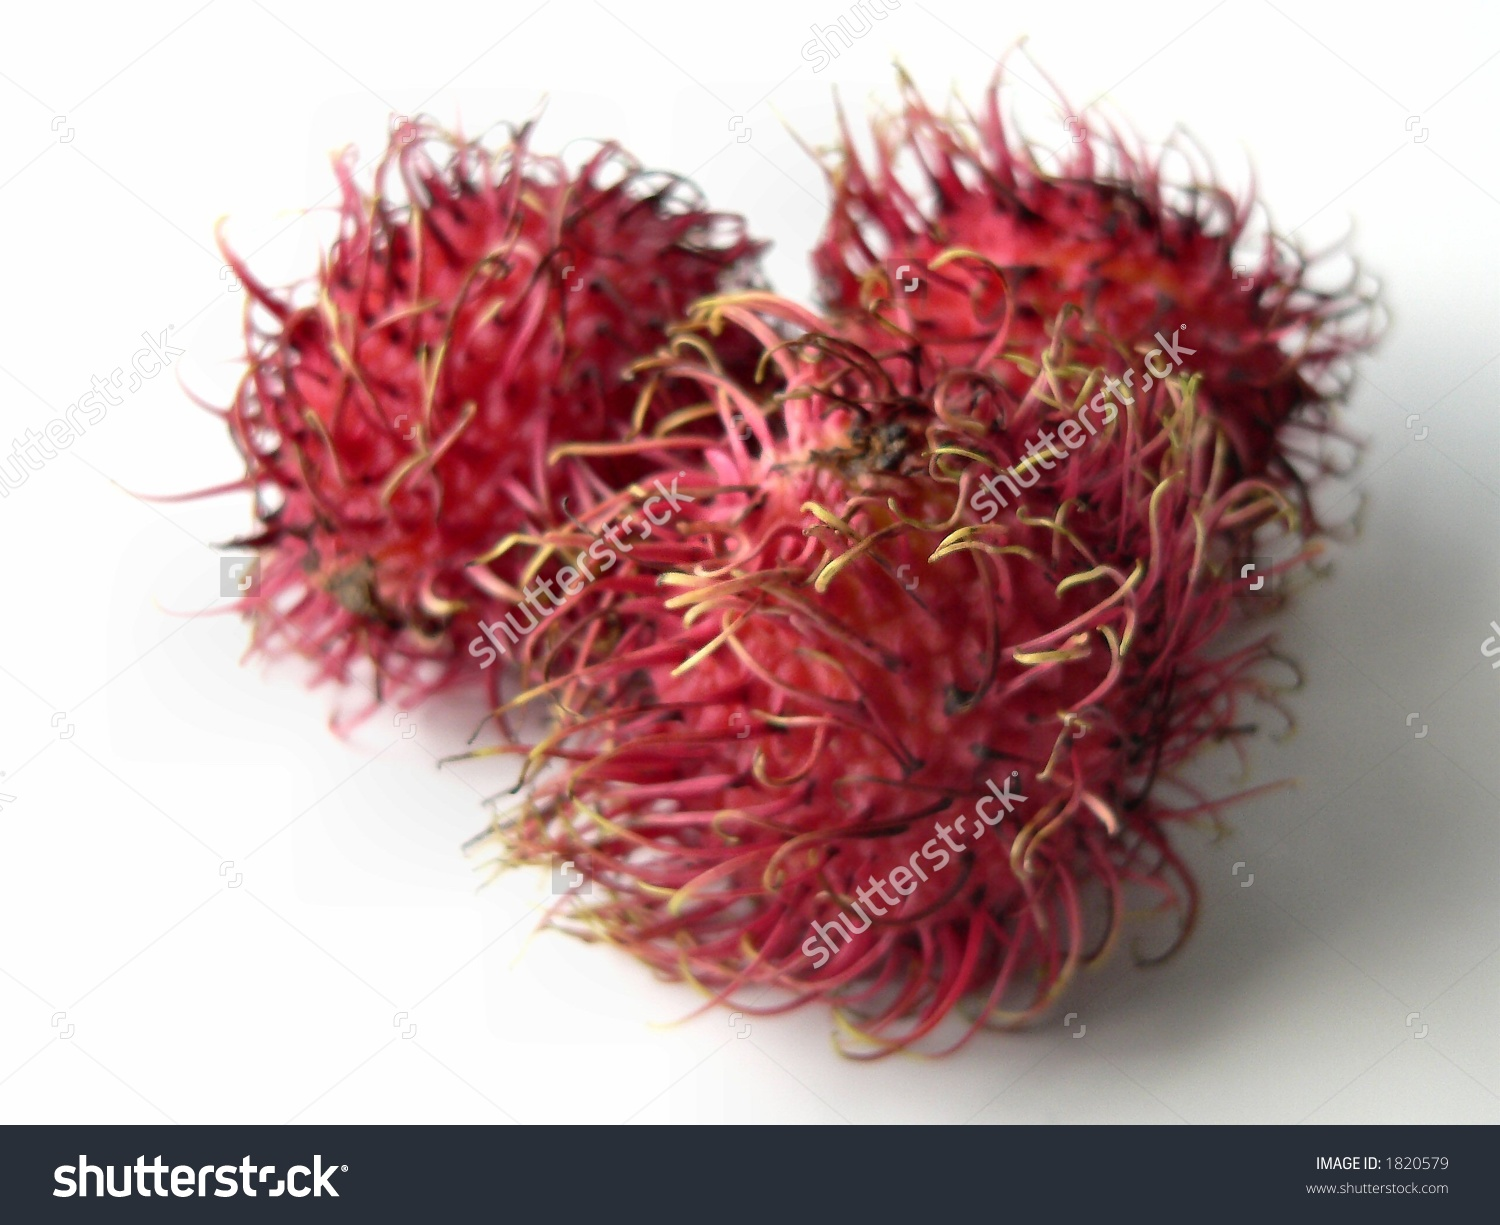 Three Red, Rambutan Fruits On White Background. The Rambutan Is.